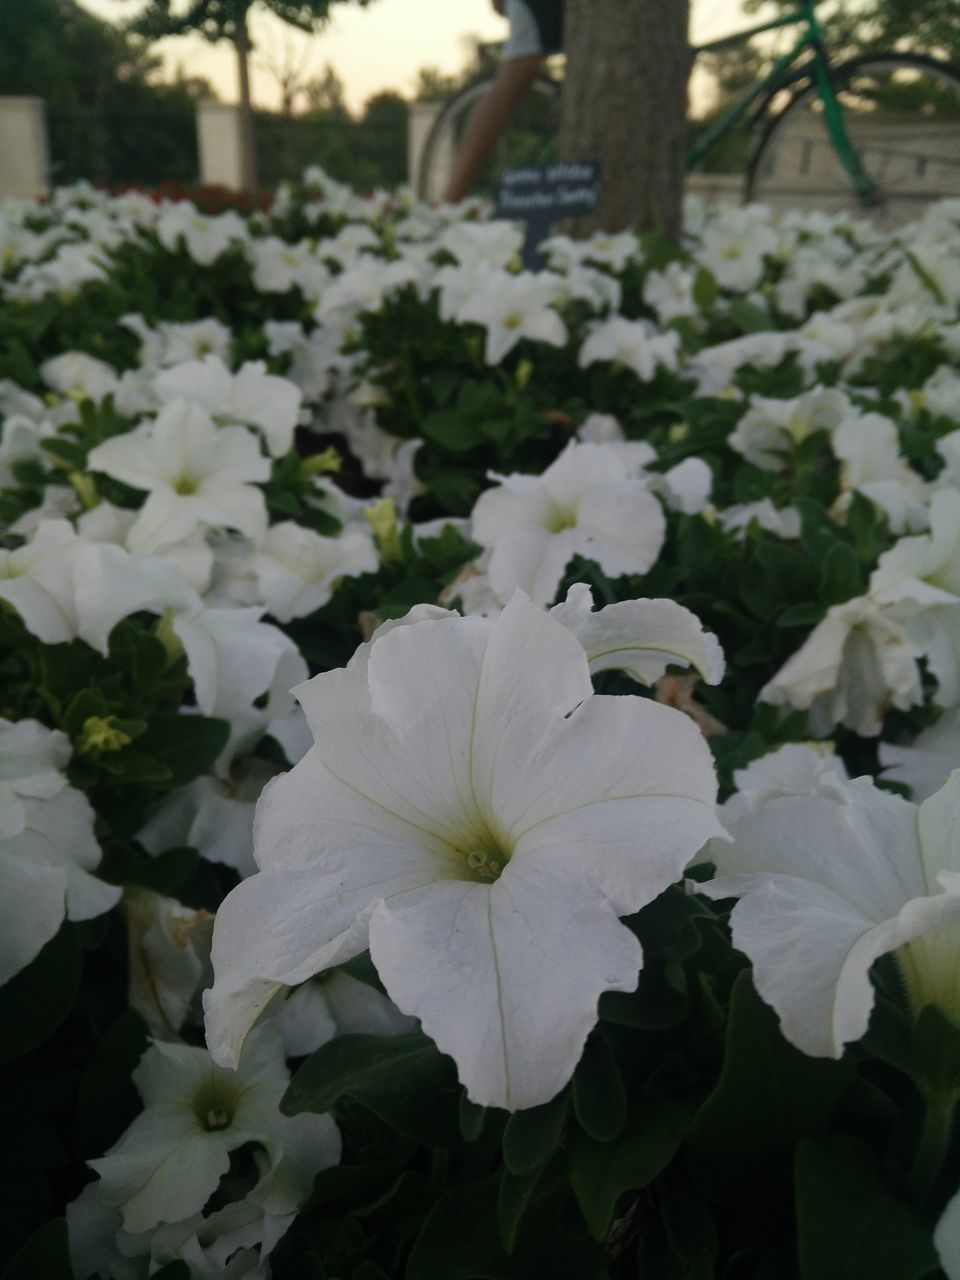 flower, plant, growth, white color, petal, beauty in nature, nature, flower head, blooming, no people, freshness, fragility, outdoors, day, close-up, periwinkle, petunia